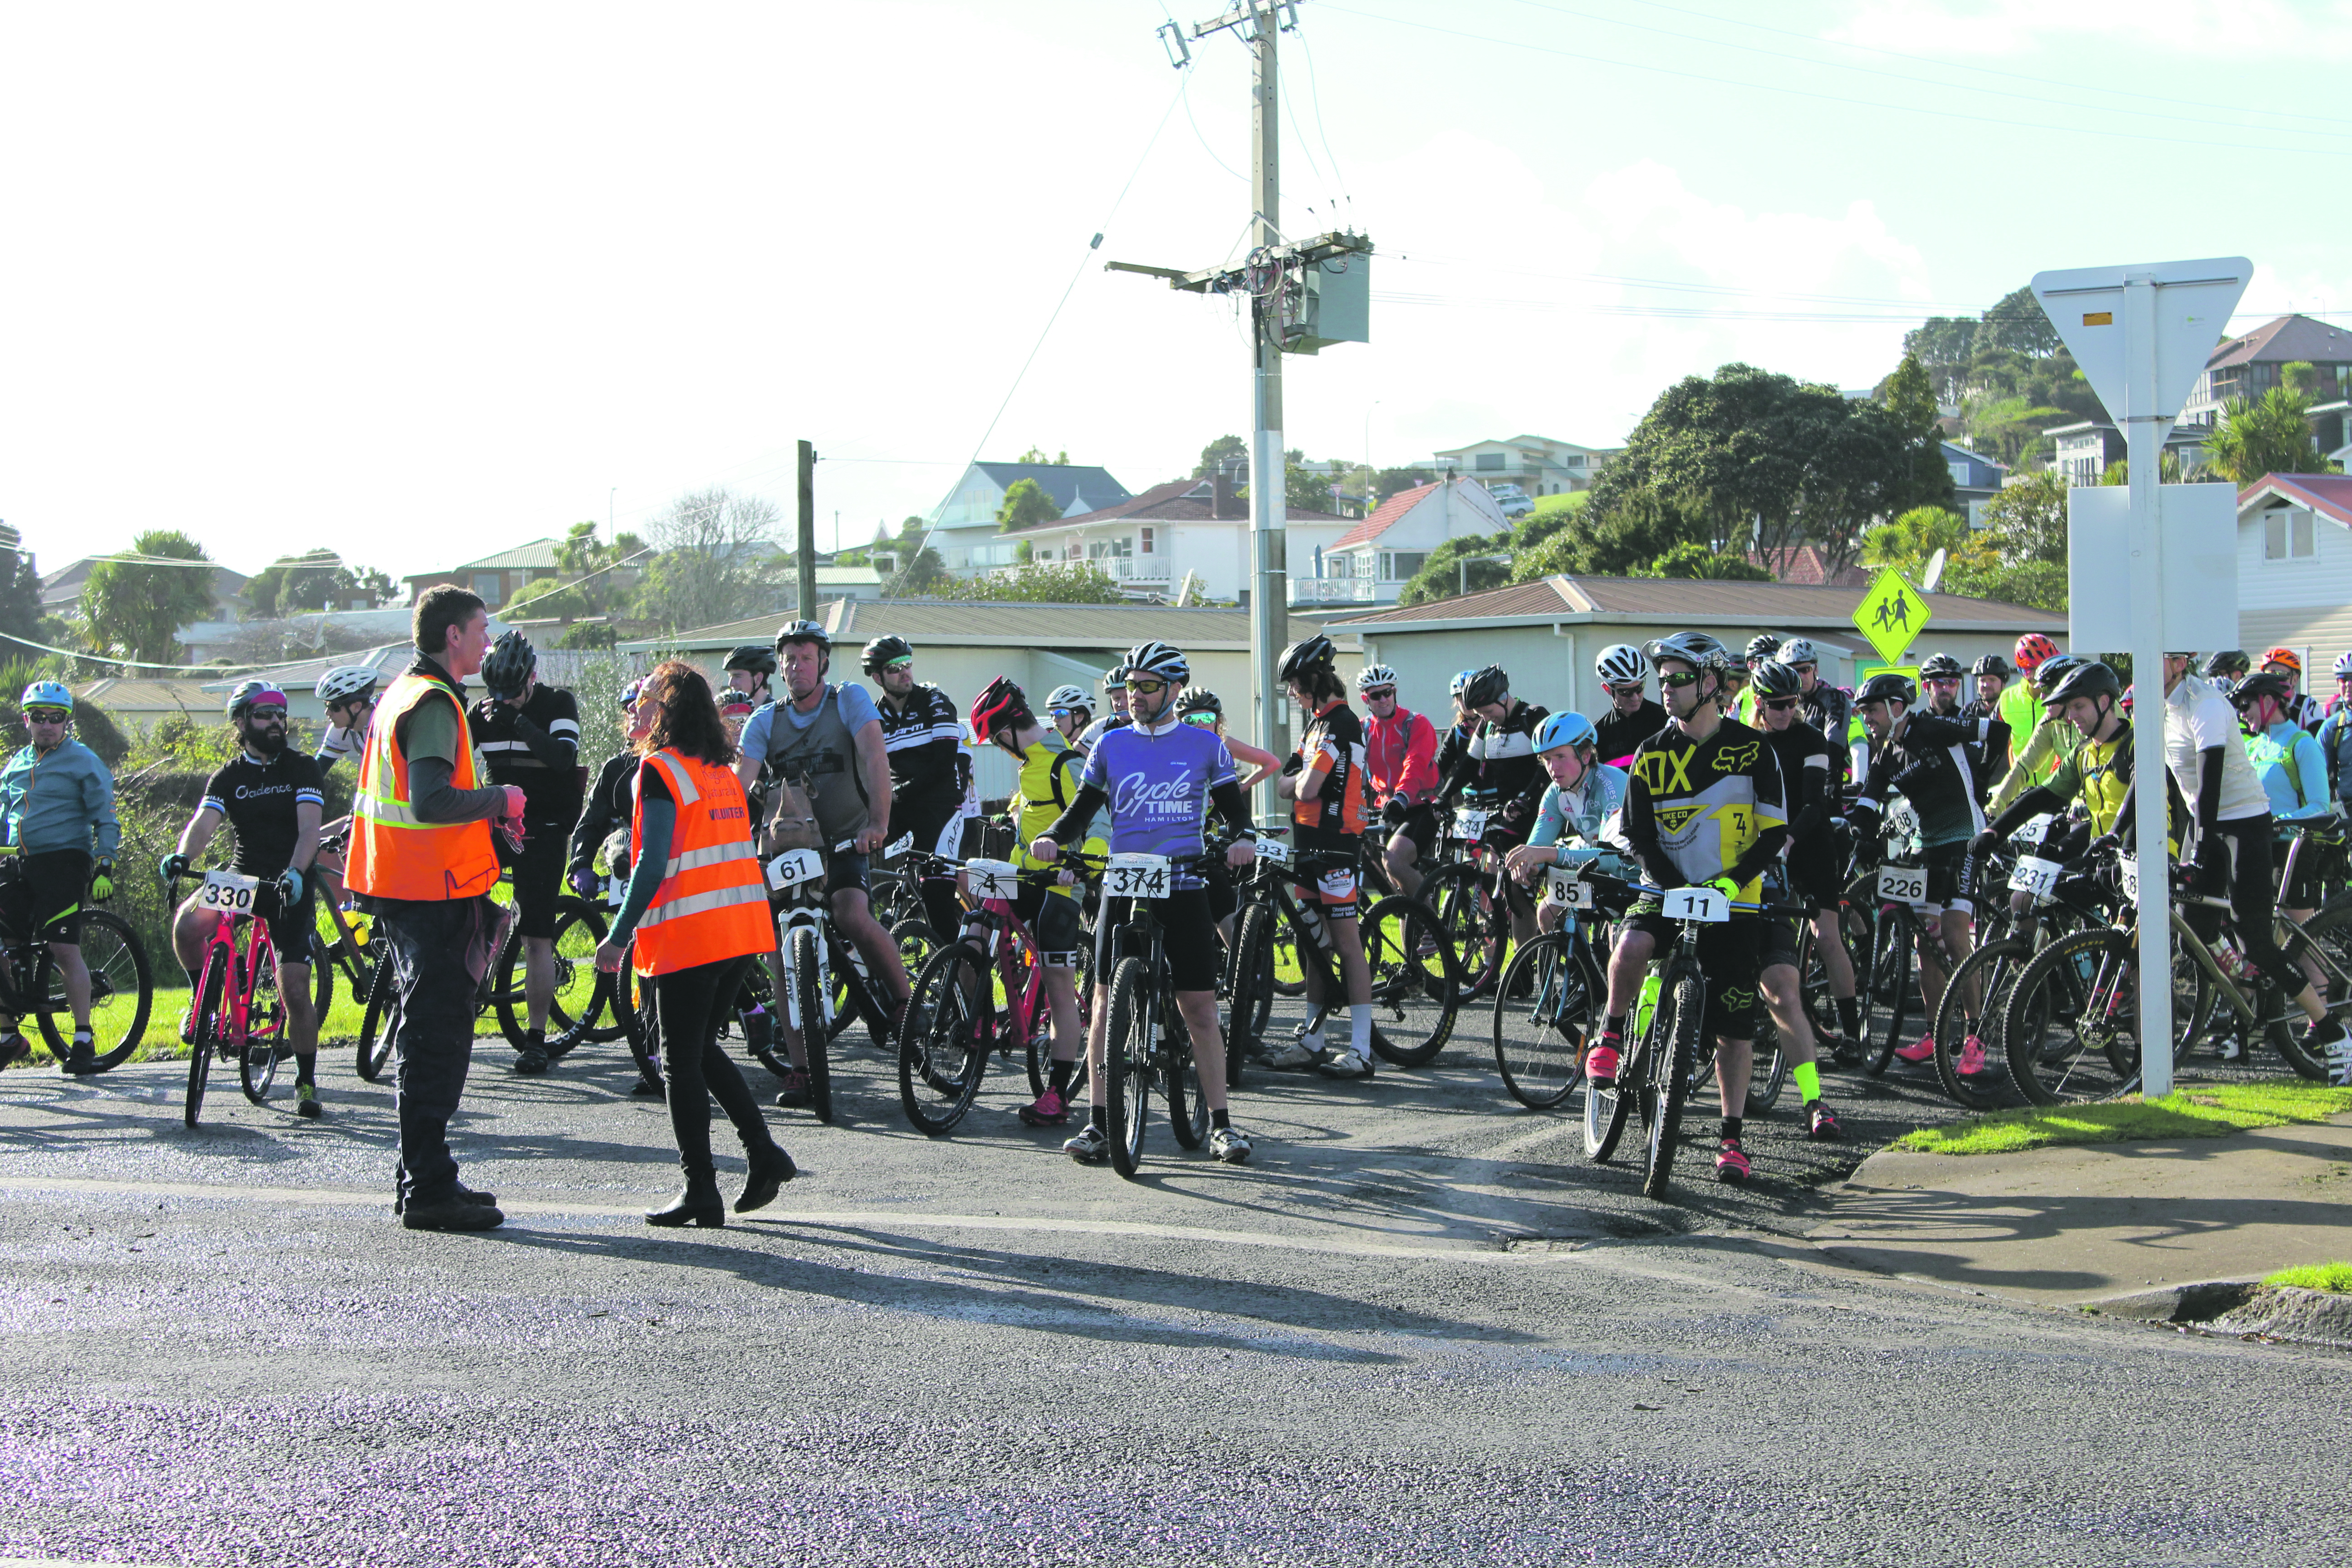 Cyclists await the start of the Karioi Classic.